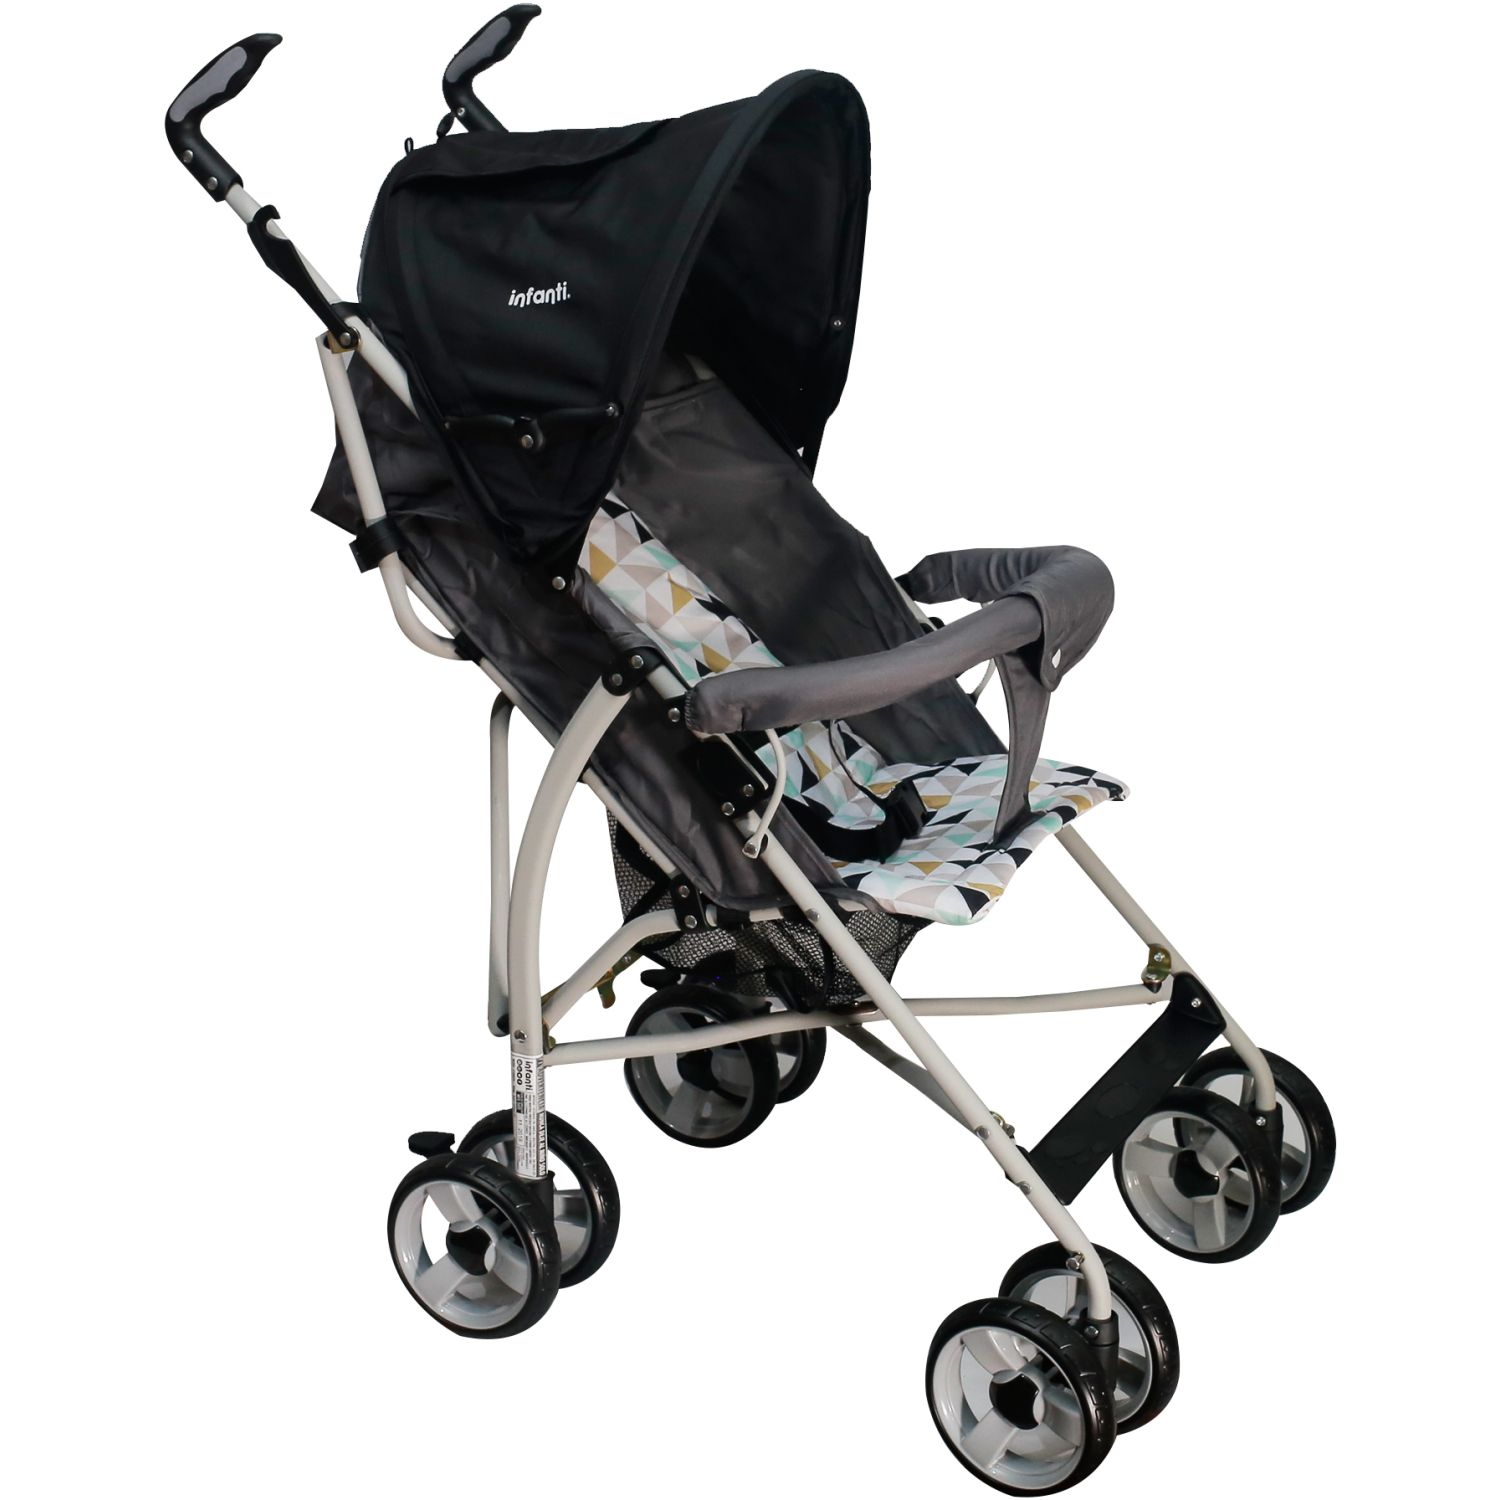 INFANTI COCHE BASTON SPIN TRIANGLES BLACK Negro Ligero